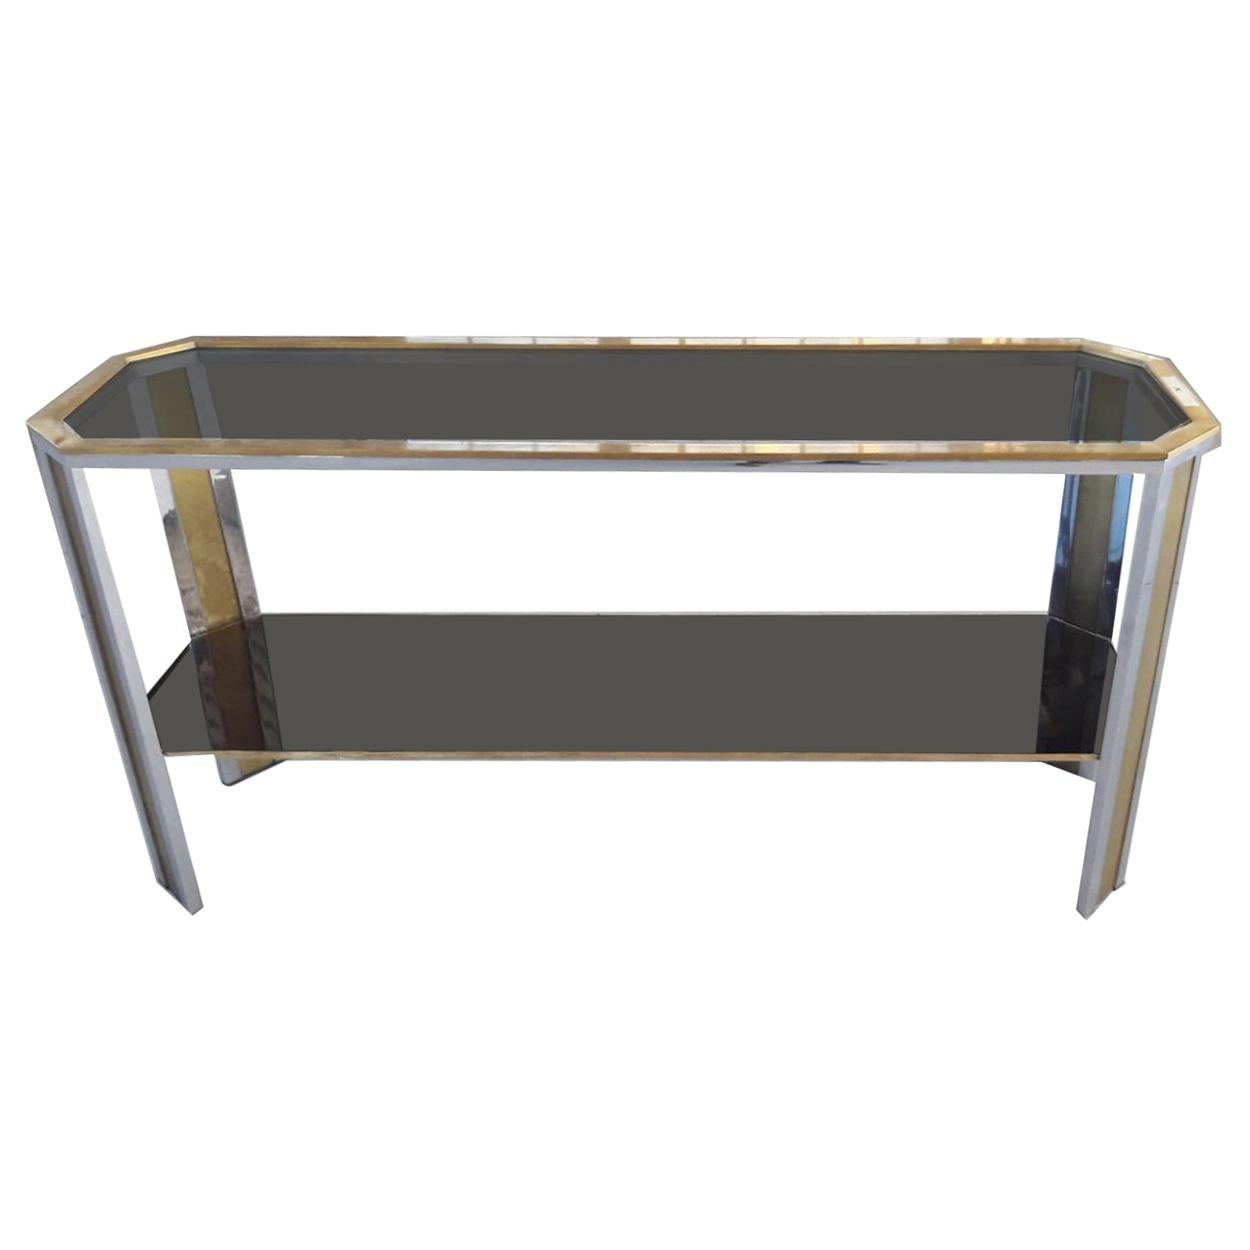 1970s Brass and Steel Smoked Glass Top Table Console at Romeo Rega manner